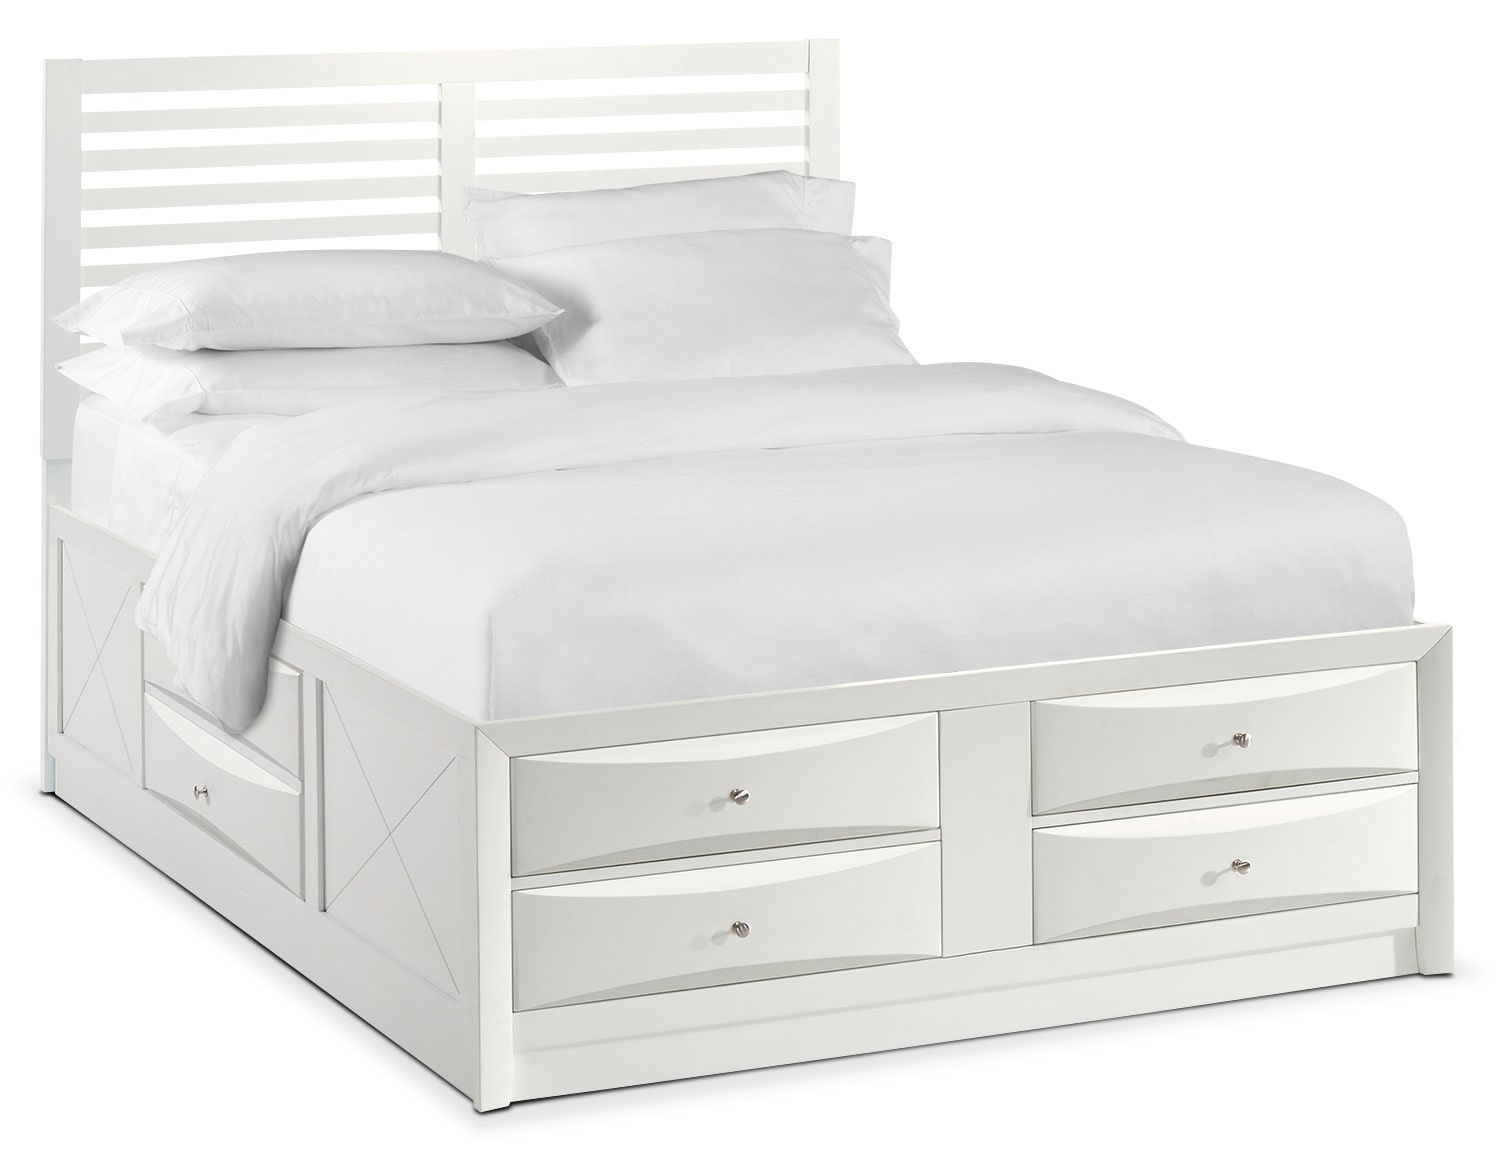 Braden Queen Slat Bed with Storage - White